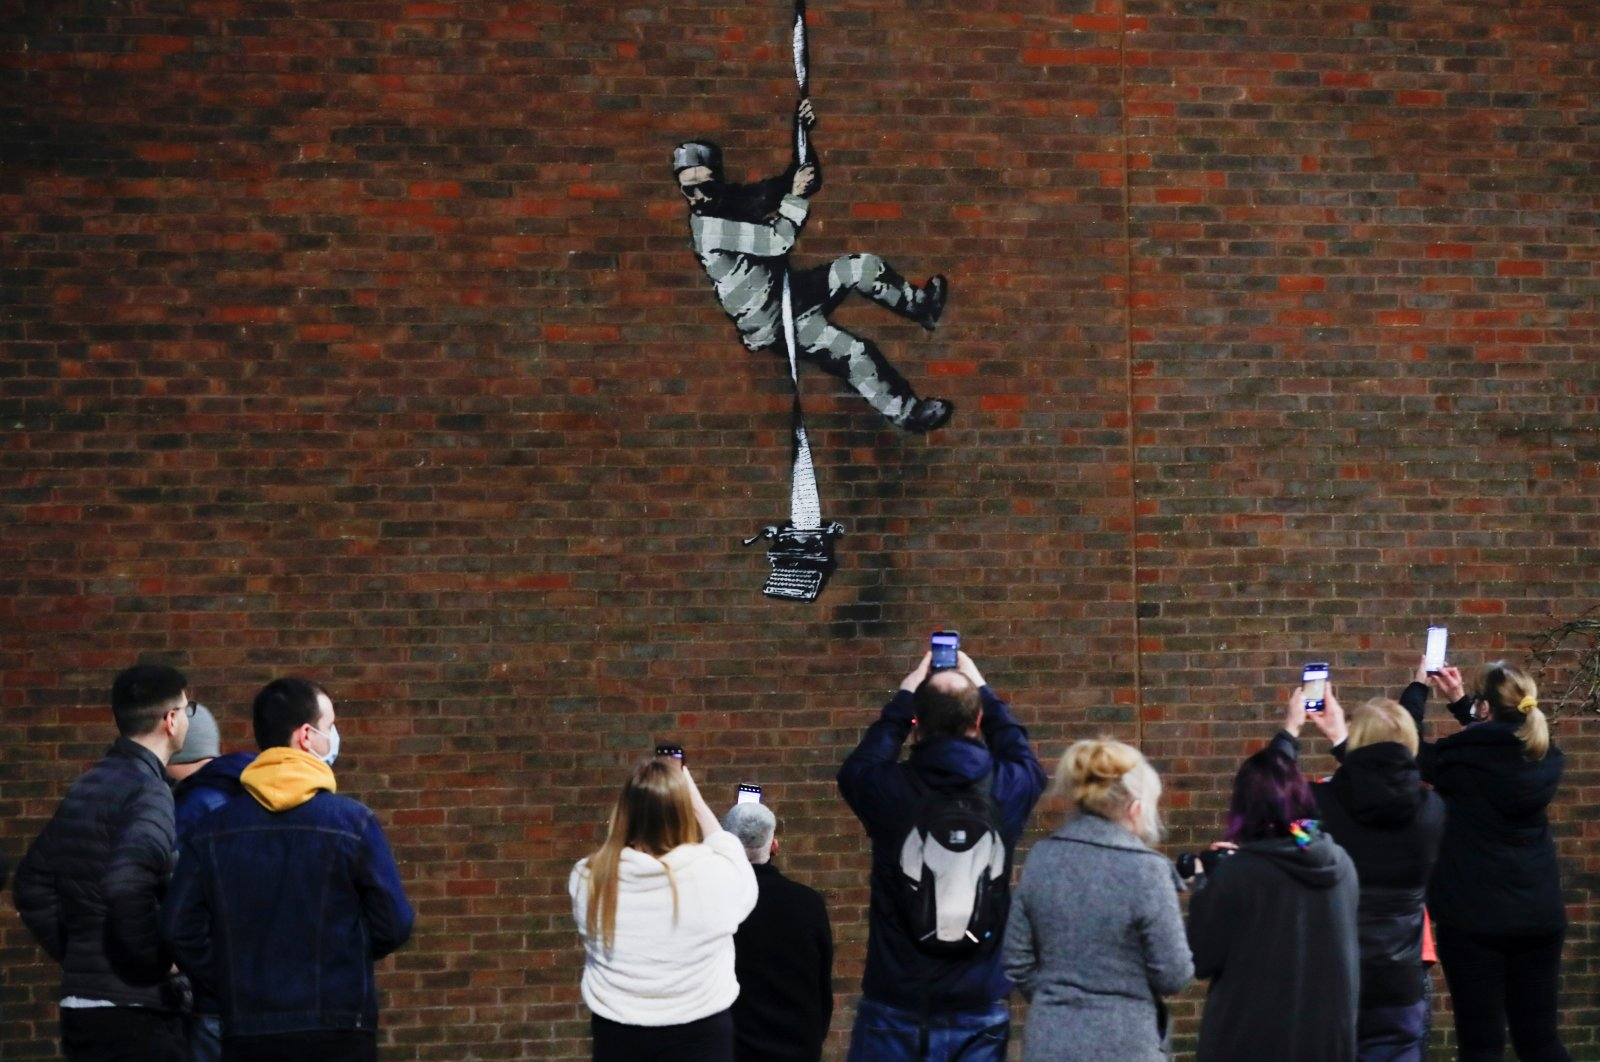 People take pictures of a mural by street artist Banksy on a wall at HM Reading Prison in Reading, Britain, March 1, 2021. (REUTERS)